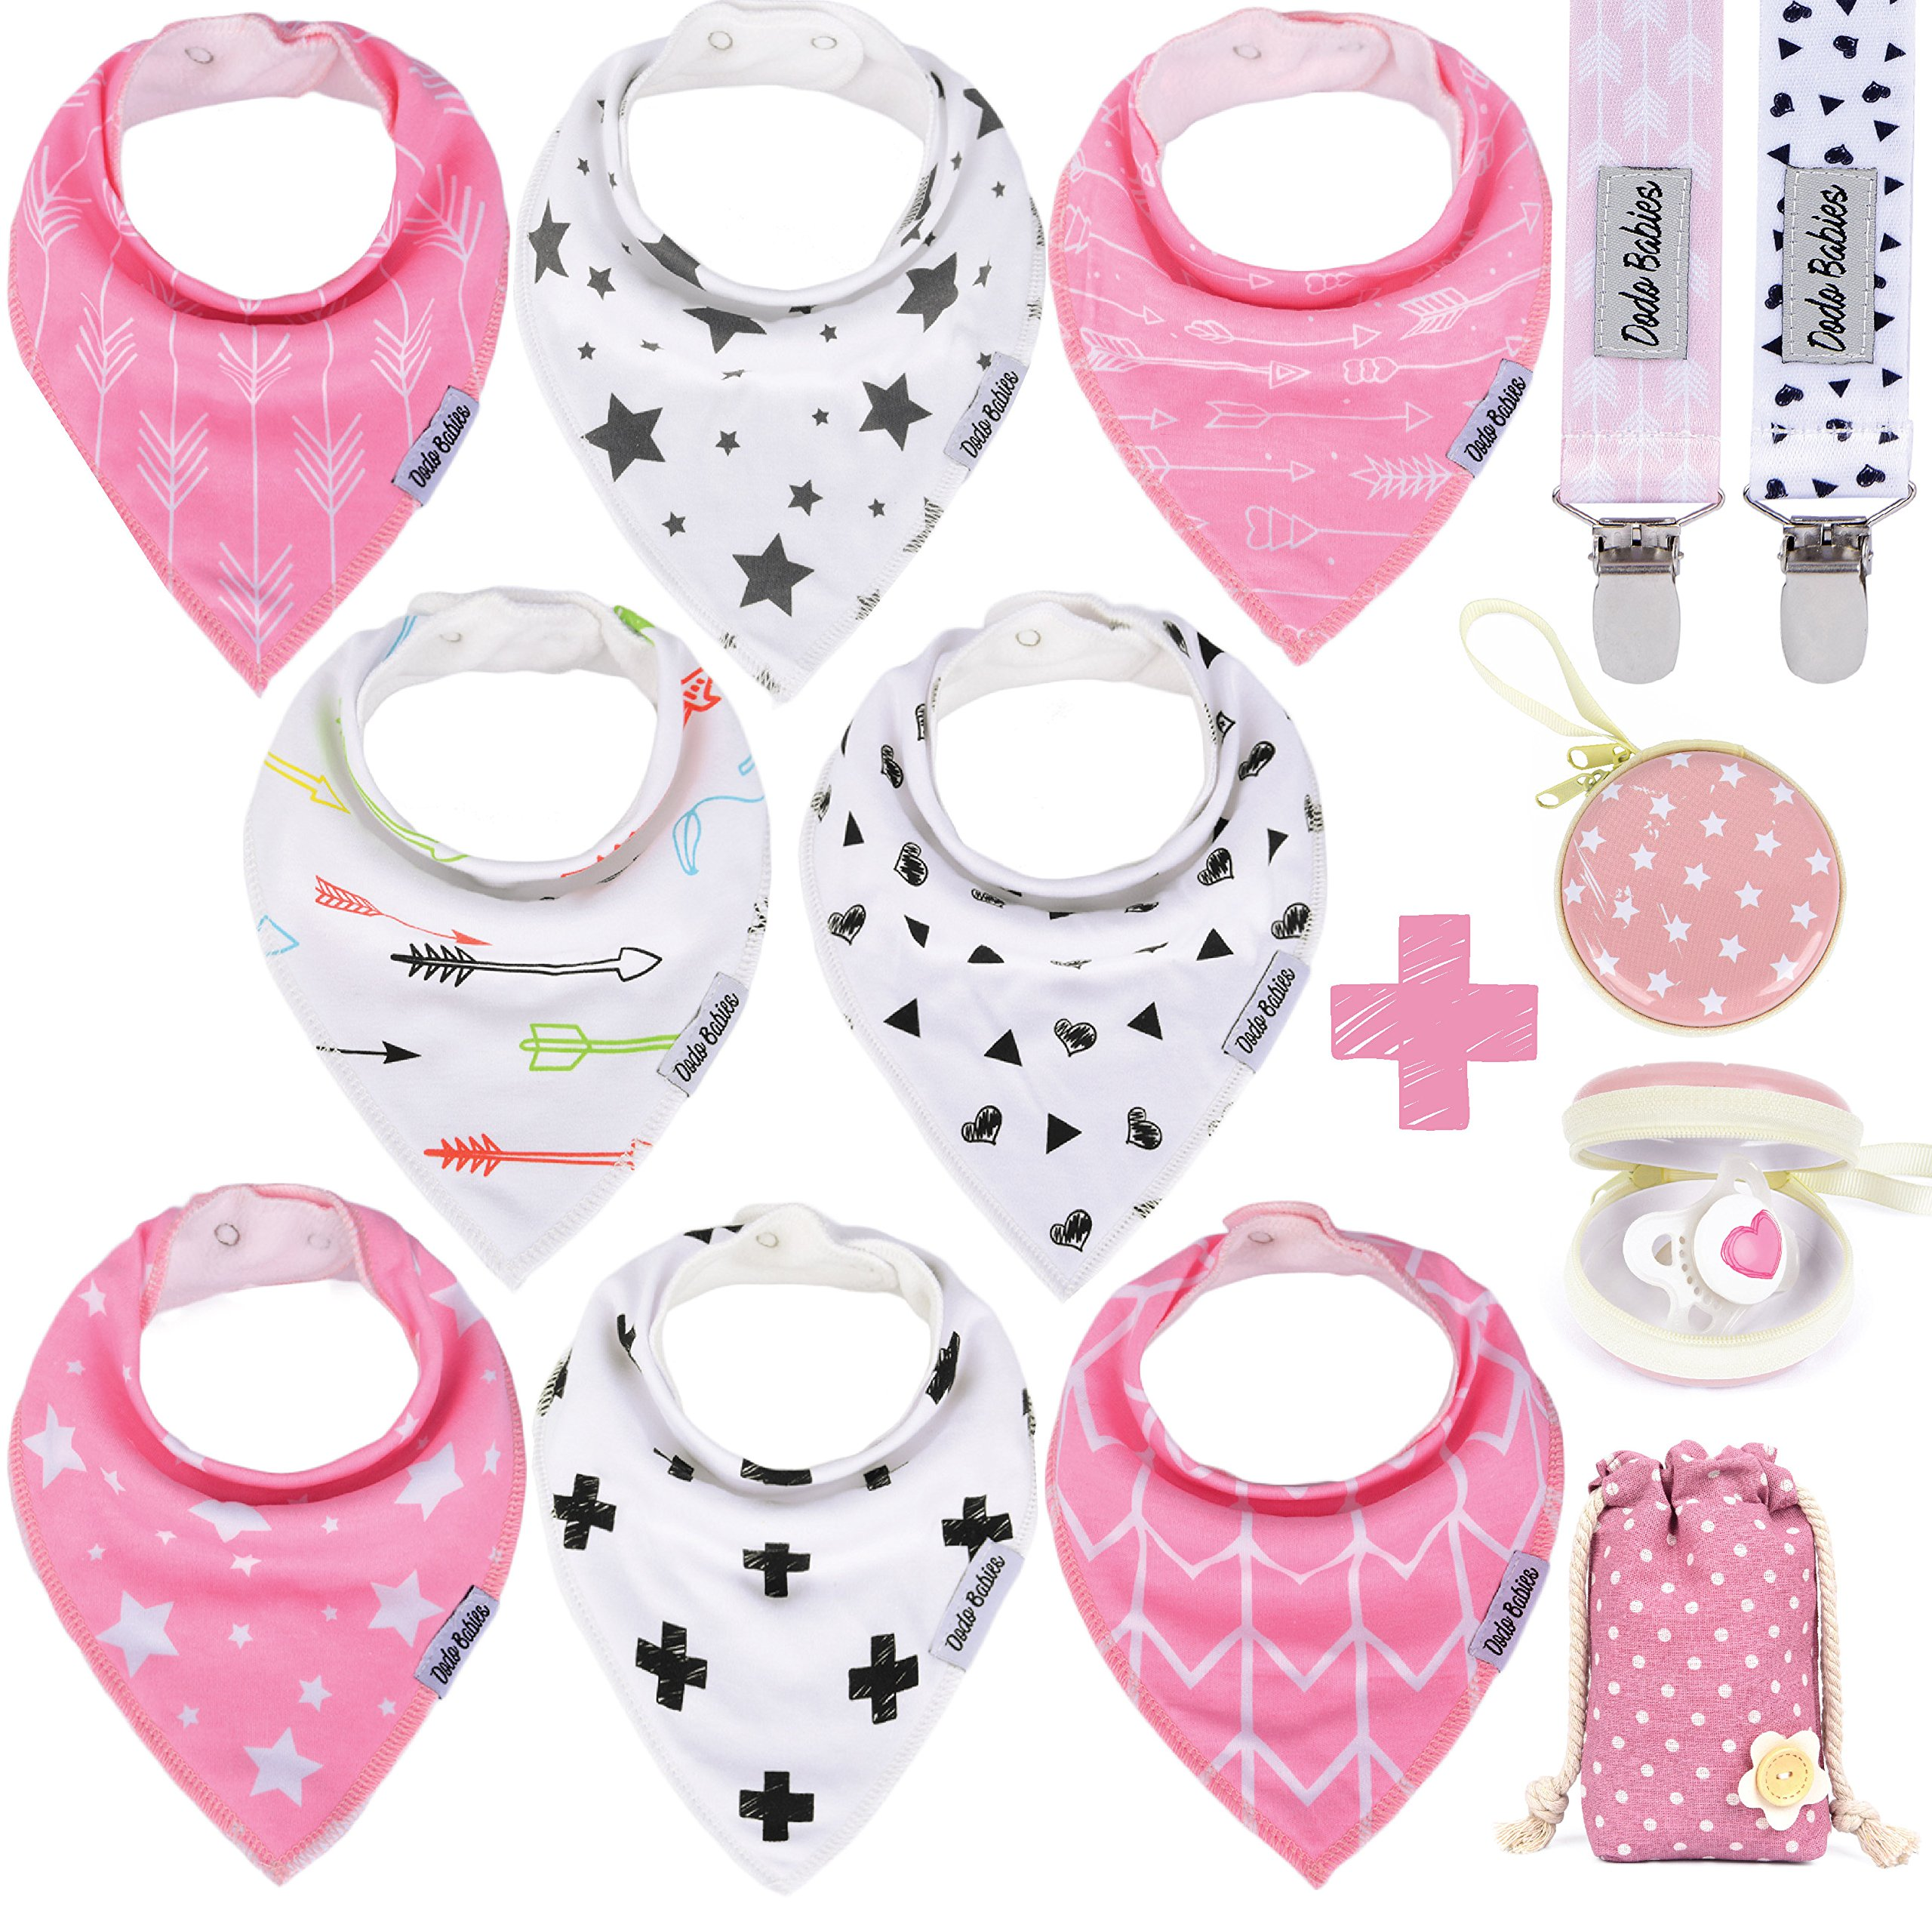 BabyBandana DroolBibs by Dodo Babies + 2 Pacifier Clips + Pacifier Case In a Gift Bag, Pack of 8 Premium Quality For Girls , Excellent Baby Shower / Registry Gift